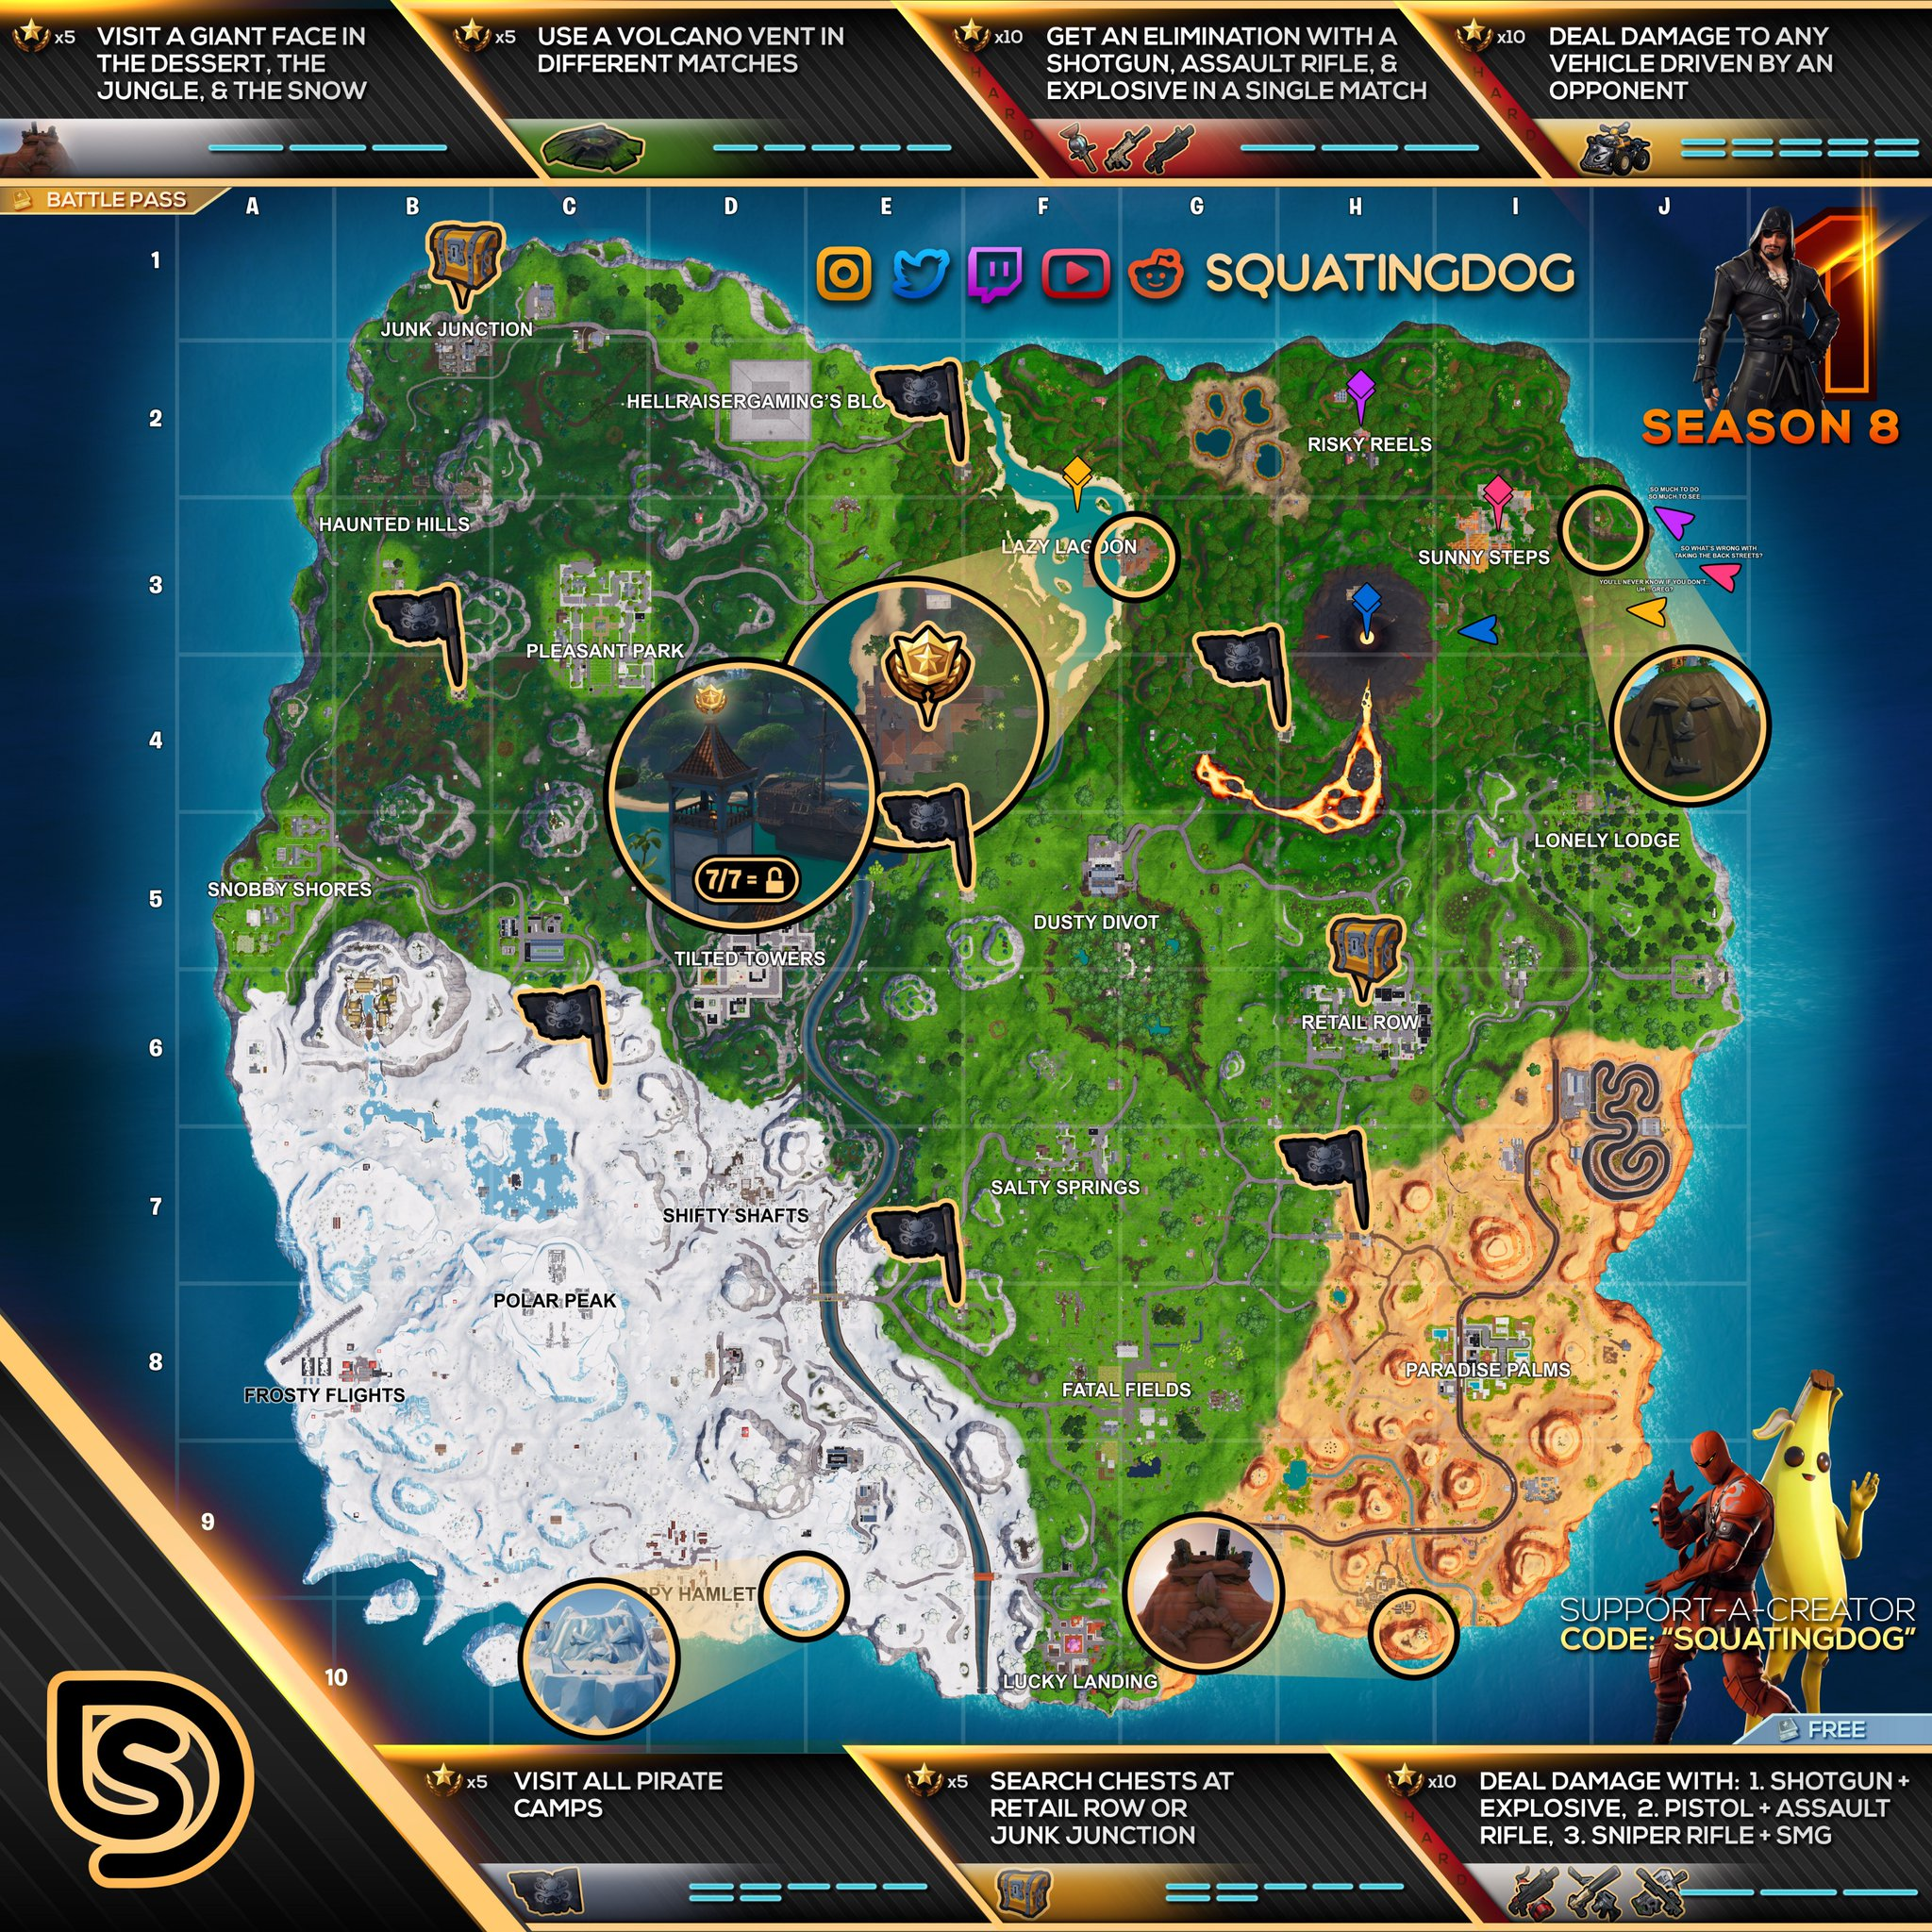 Fortnite Season 9 Week 1 Challenges Battle Star - Fortnite